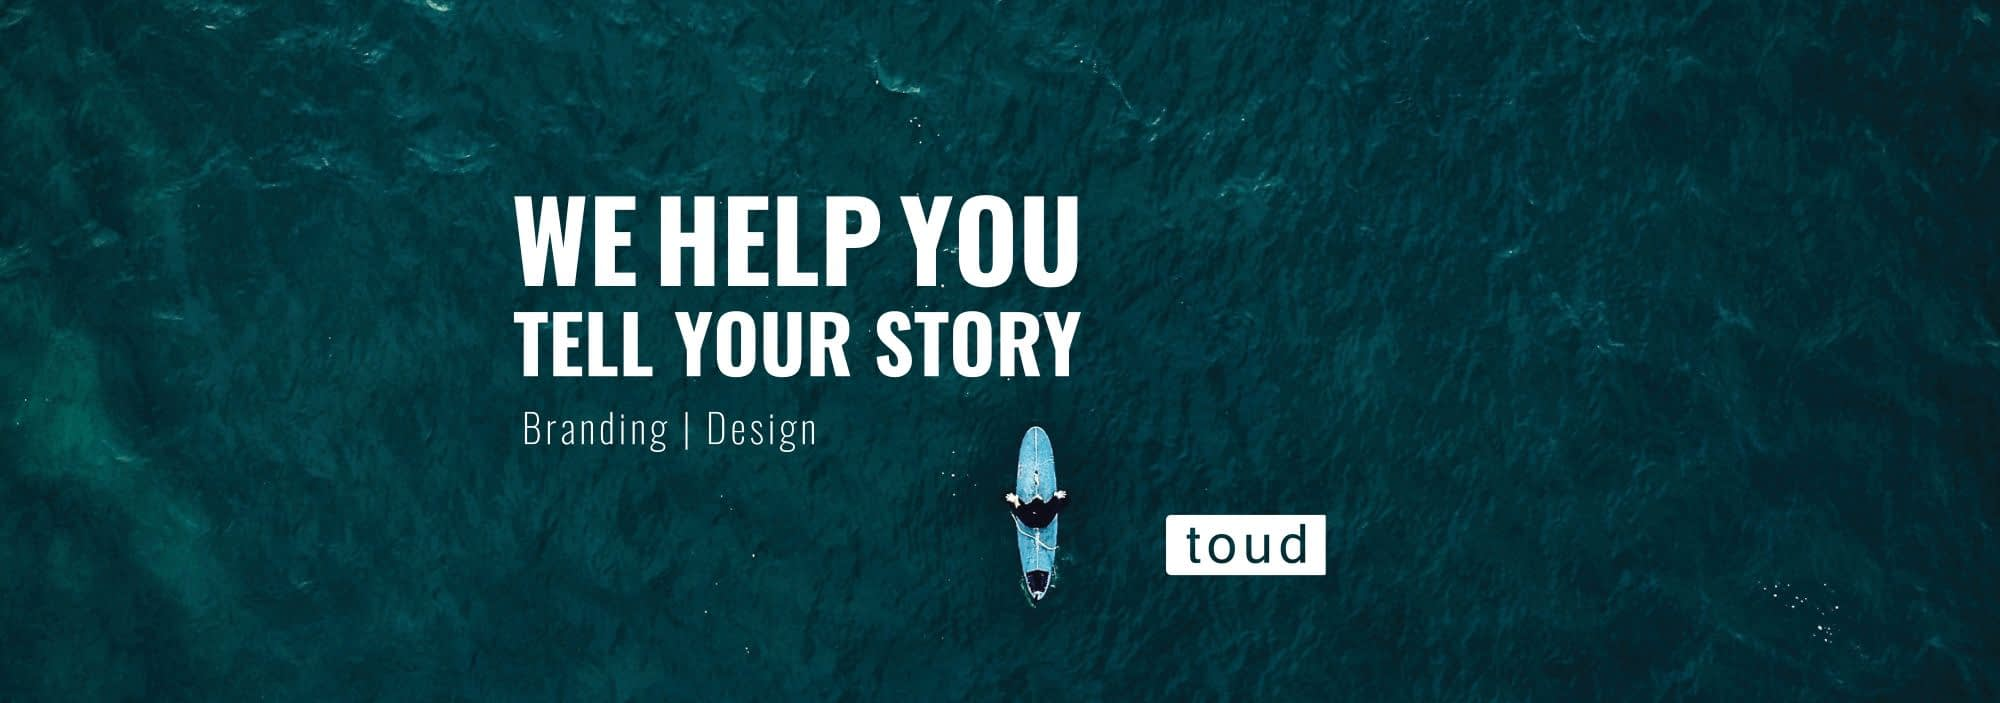 We help you tell your story, Toud, design, branding, design